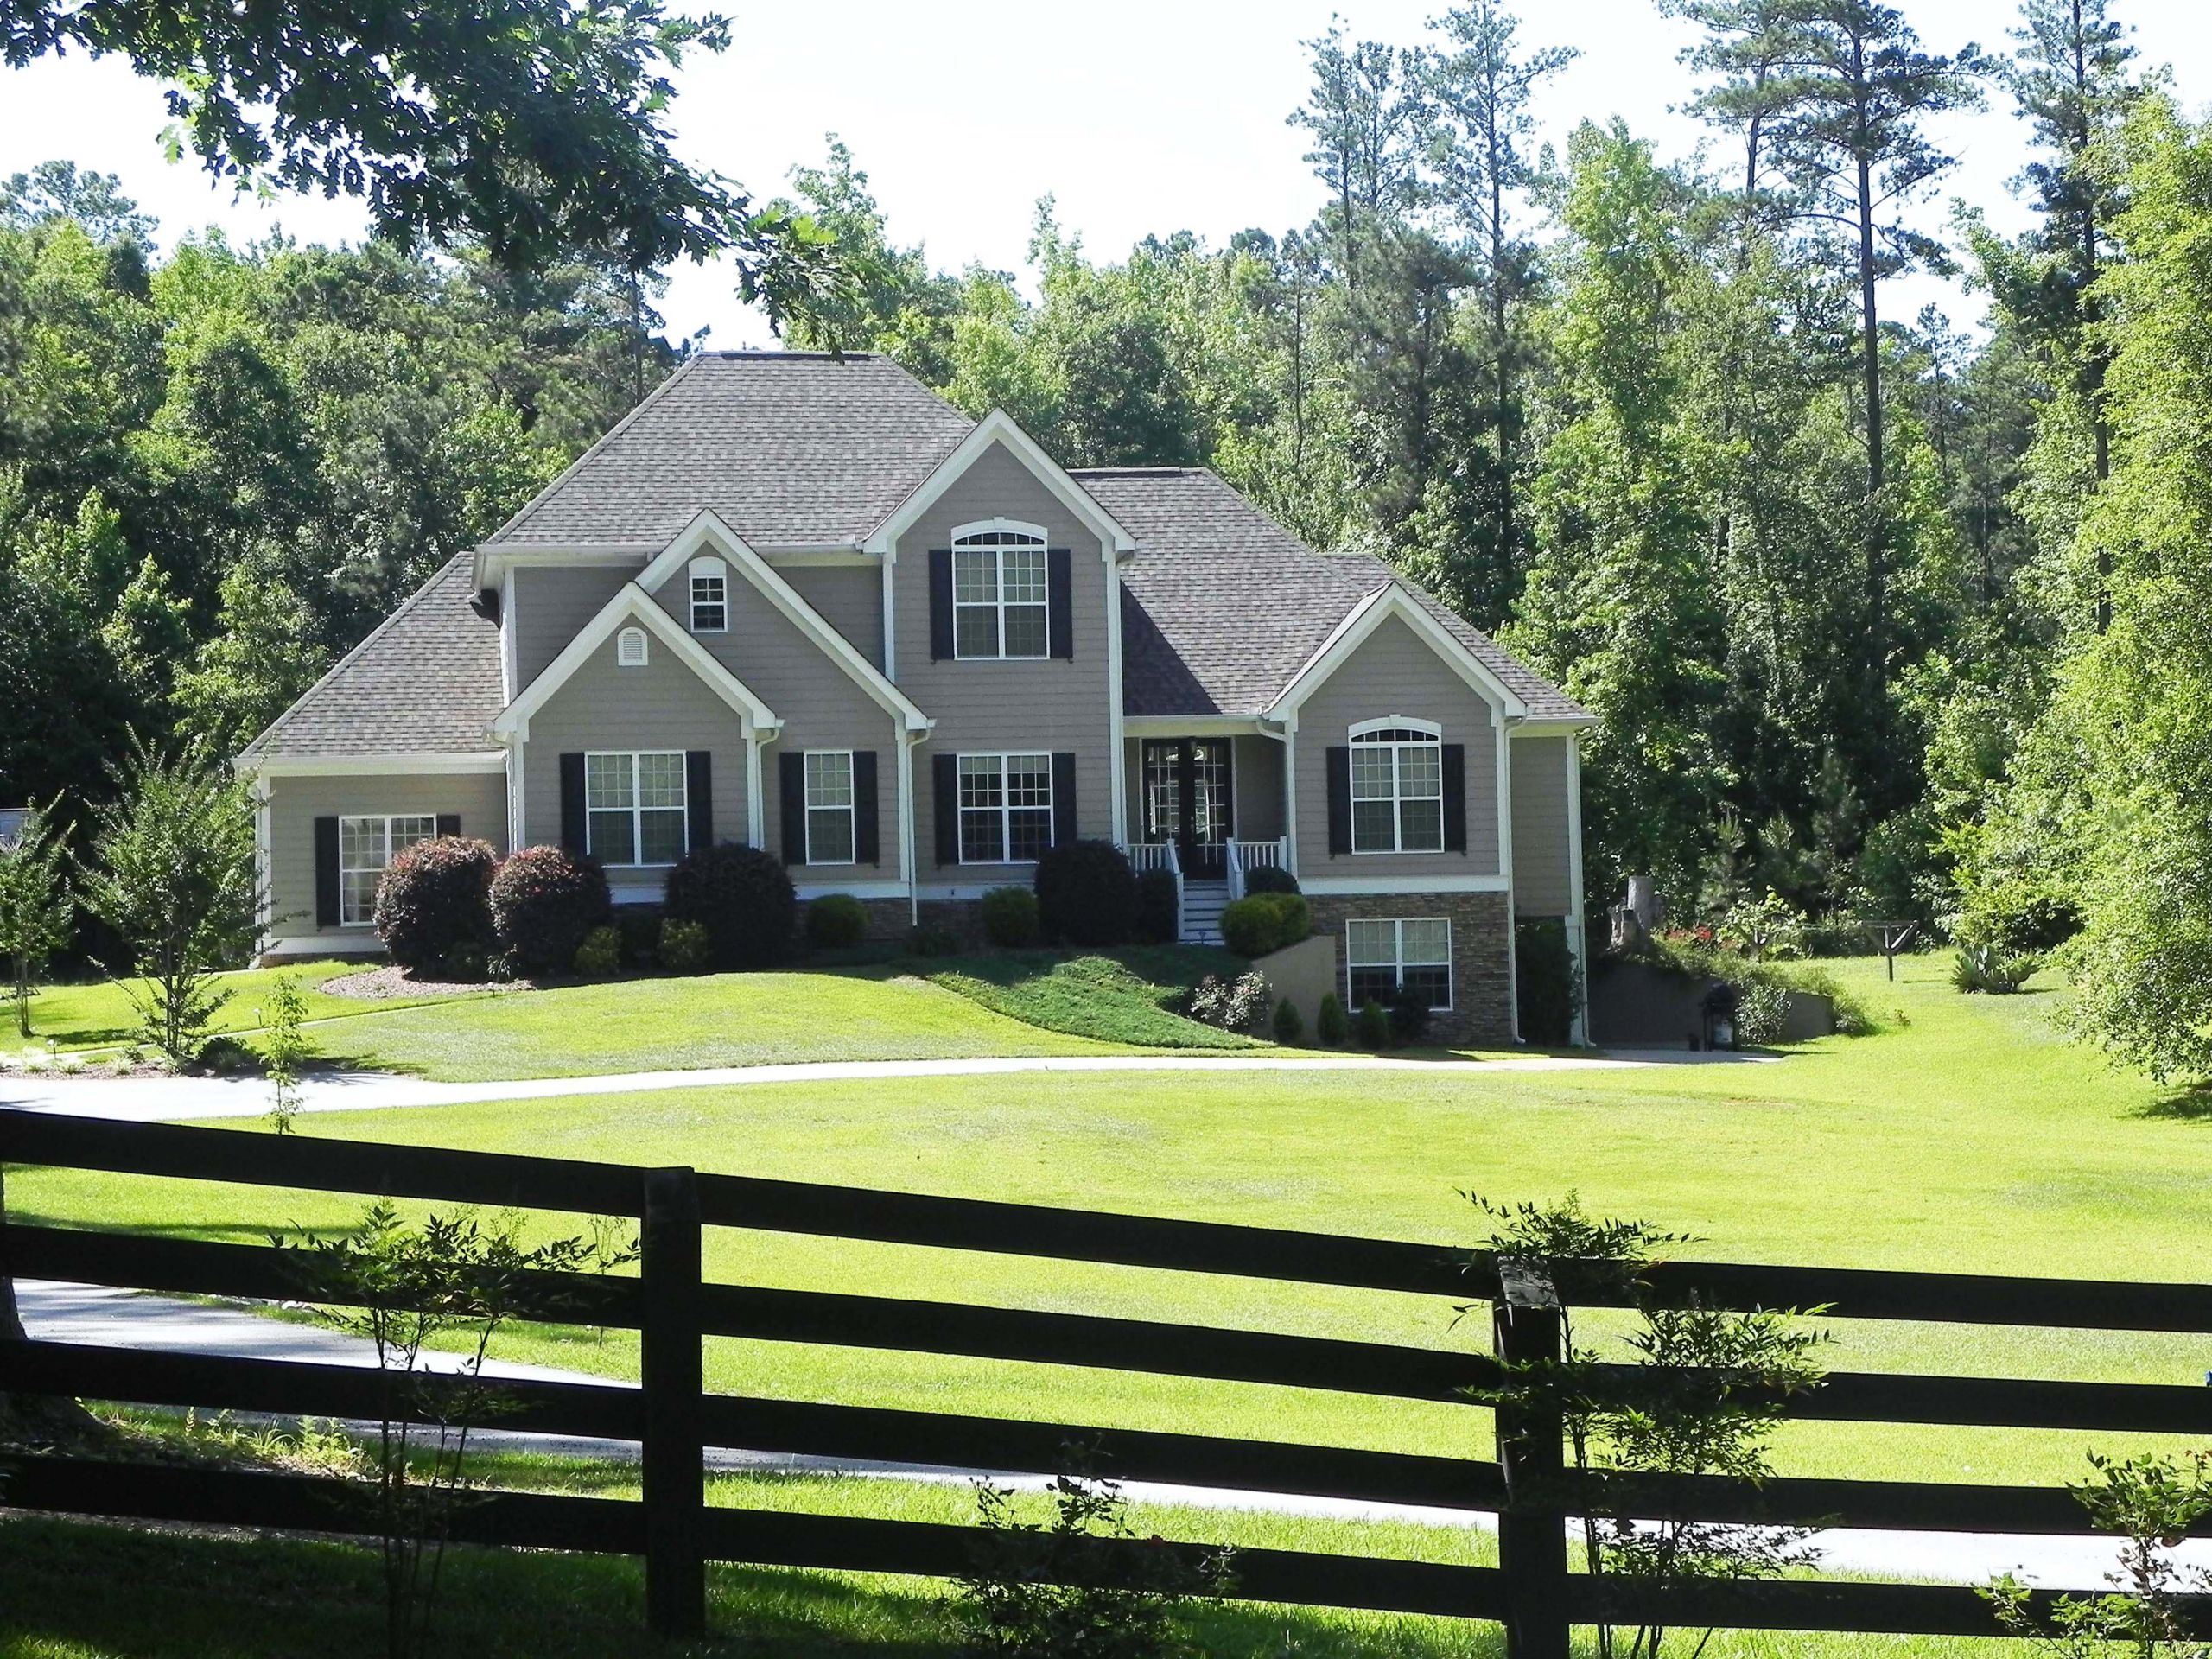 Country Living - Fayette County GA